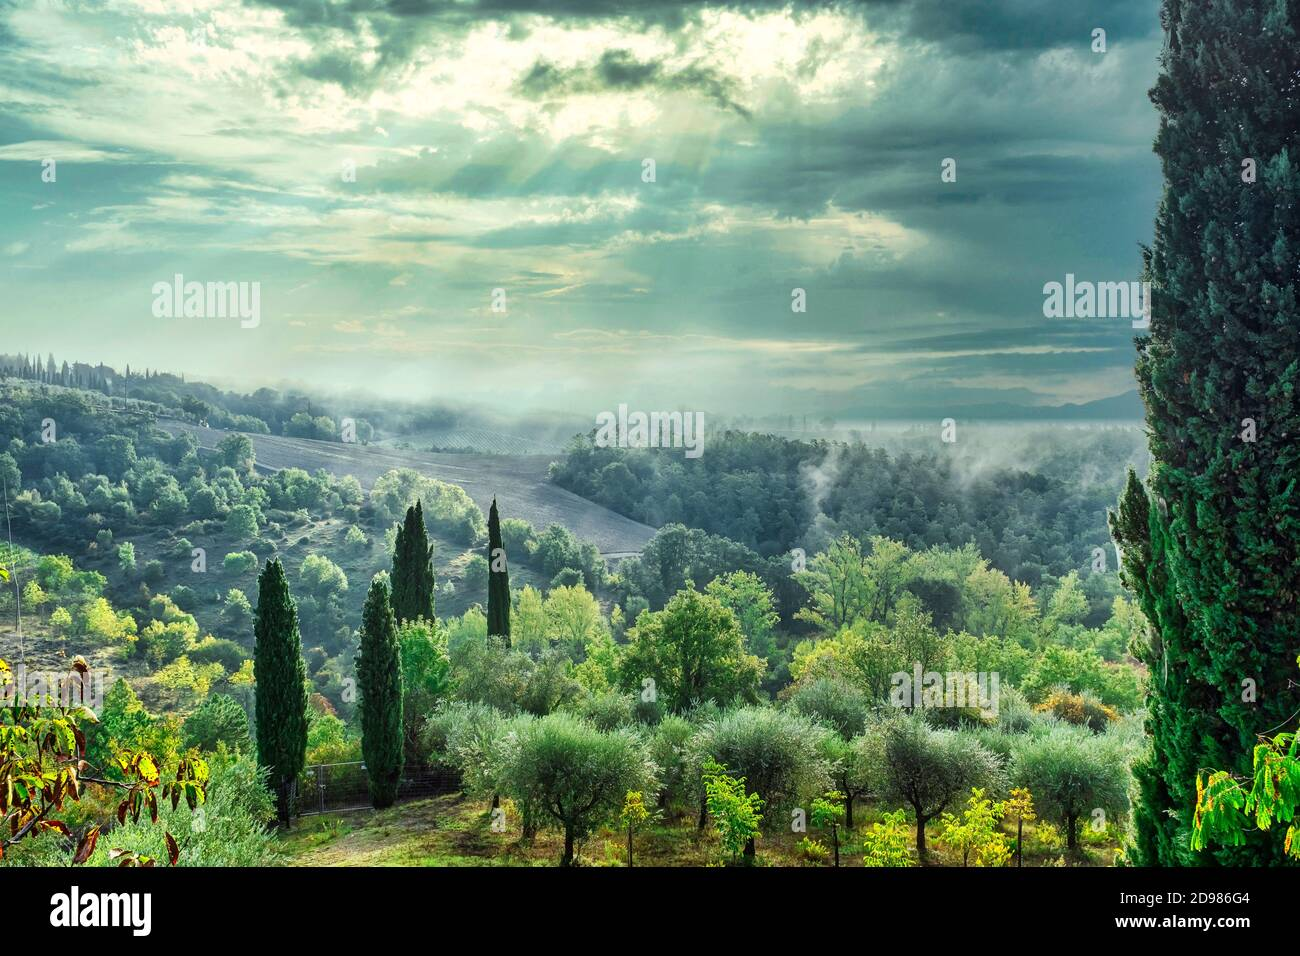 Picturesque green countryside in Tuscany Italy with sun shining through clouds. Stock Photo